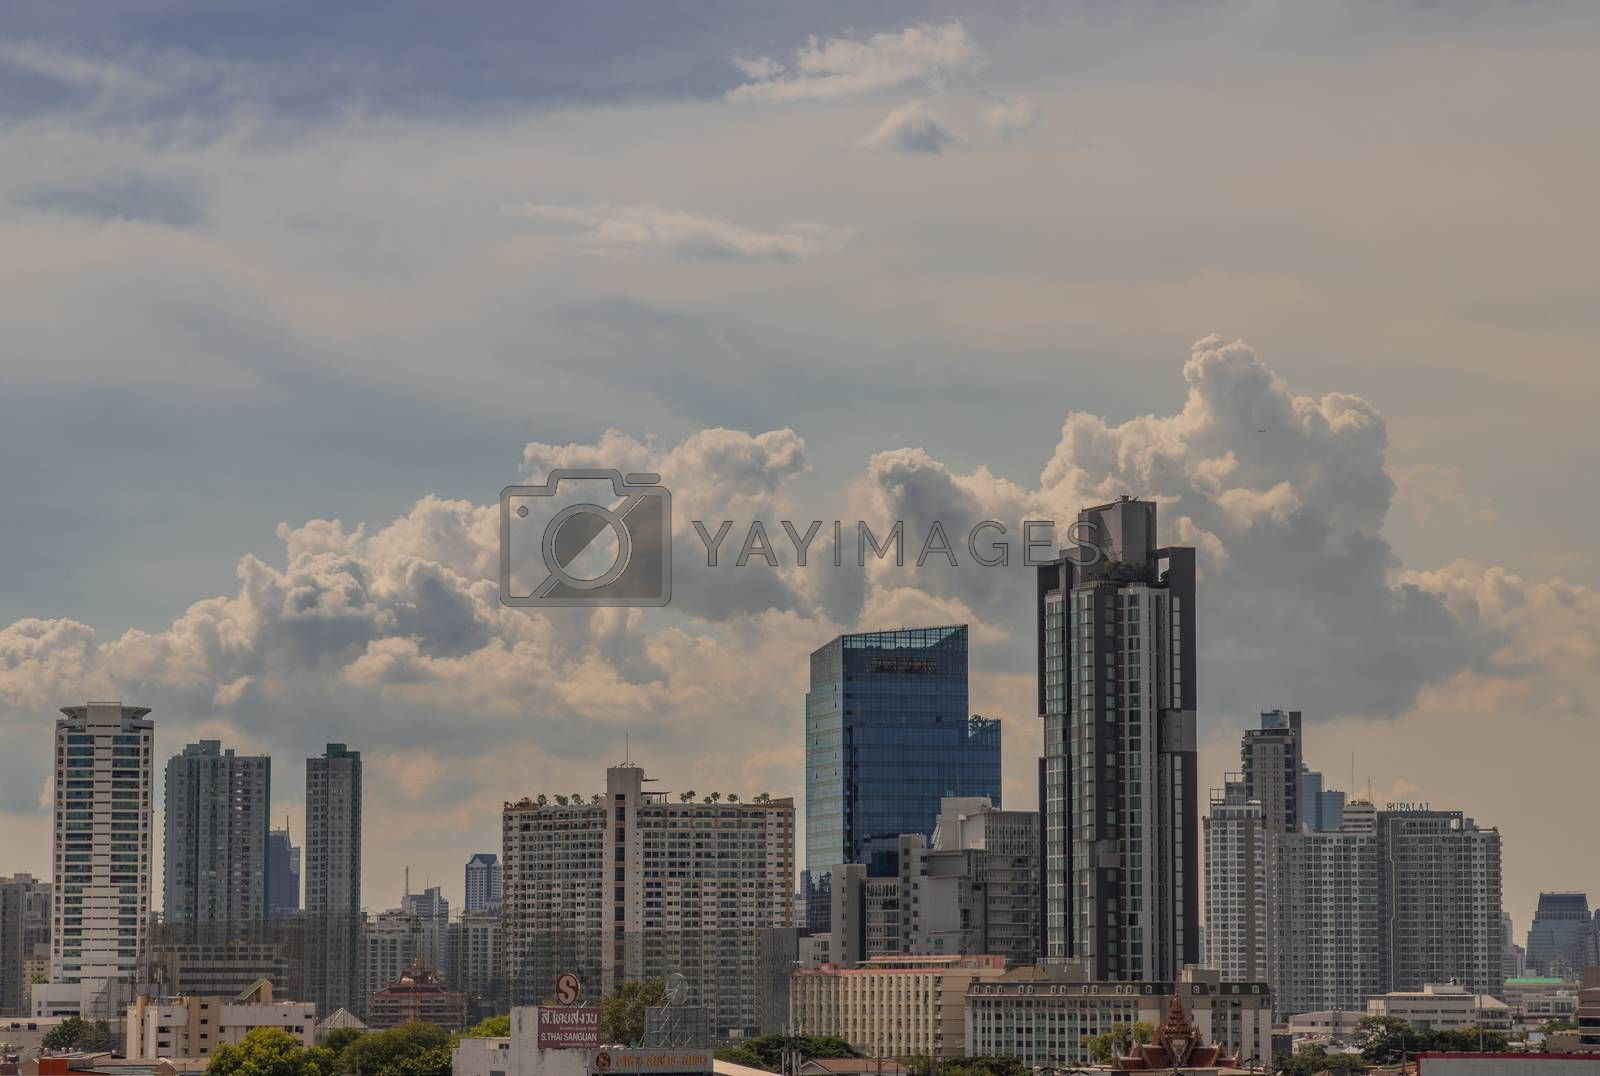 Bangkok, Thailand - Jul 23, 2020 : City view of Bangkok before the sun rises creates energetic feeling to get ready for the day waiting ahead. Selective focus.